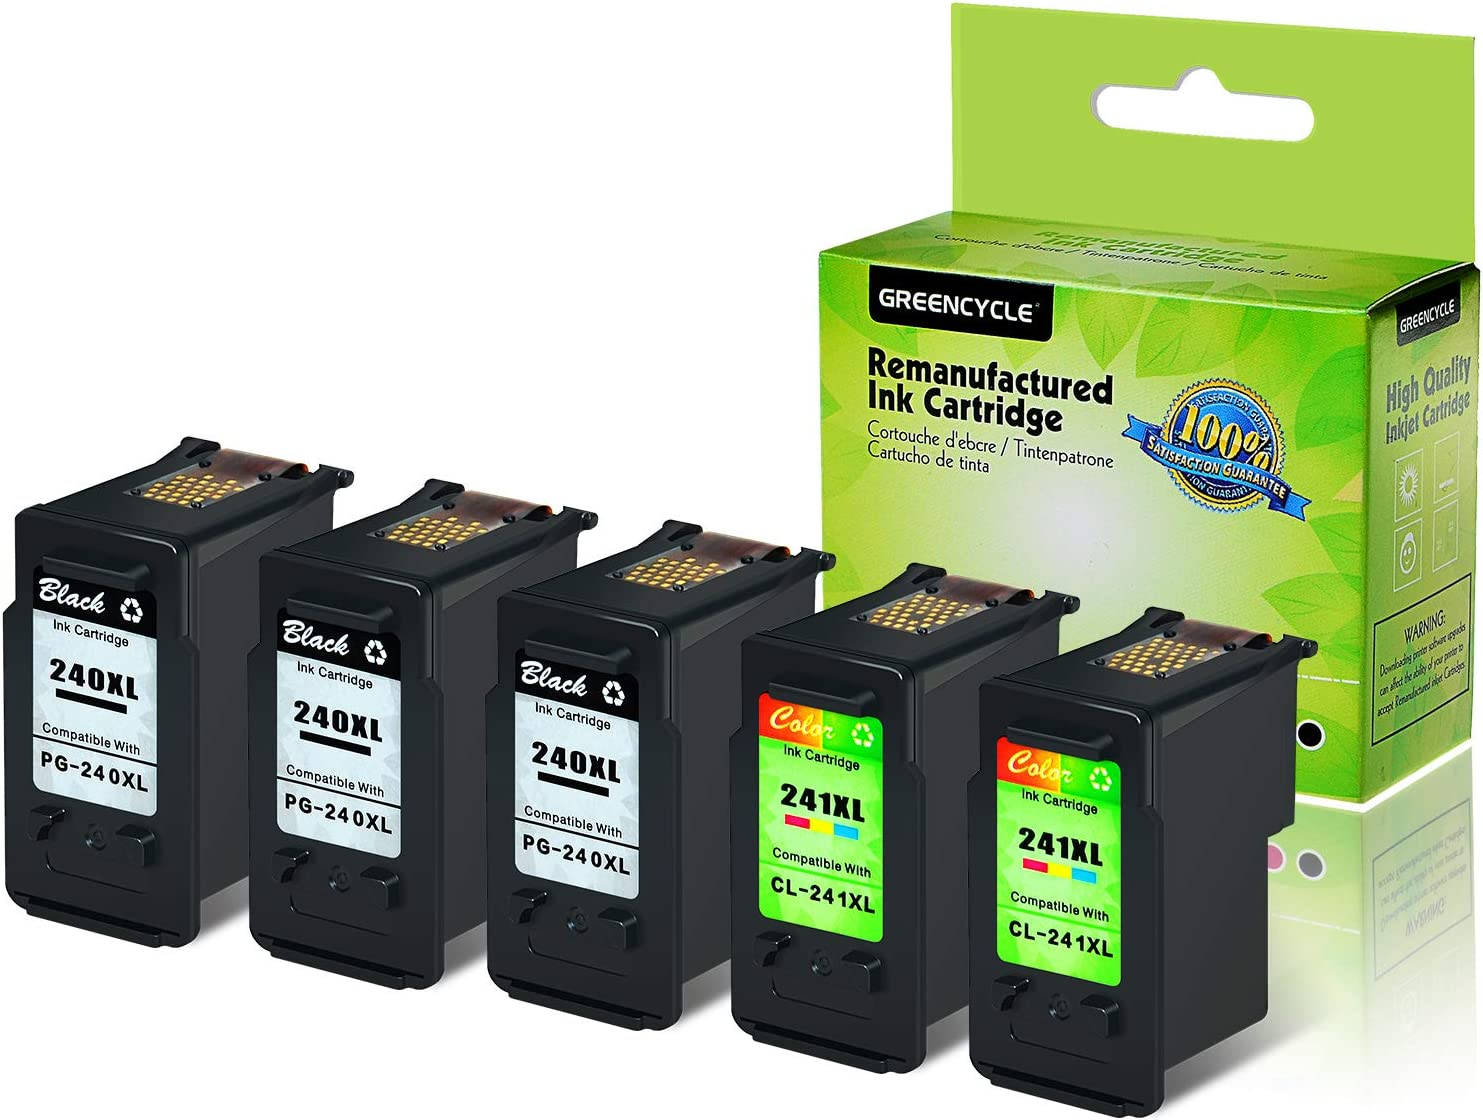 Tri-Color, 1 Pack GREENCYCLE Re-Manufactured CL-241XL 241 XL Ink Cartridge Compatible for Canon PIXMA MG3620 MG3520 MG2220 MX392 MX432 MX452 MX472 MX512 MG3522 MX522 MX532